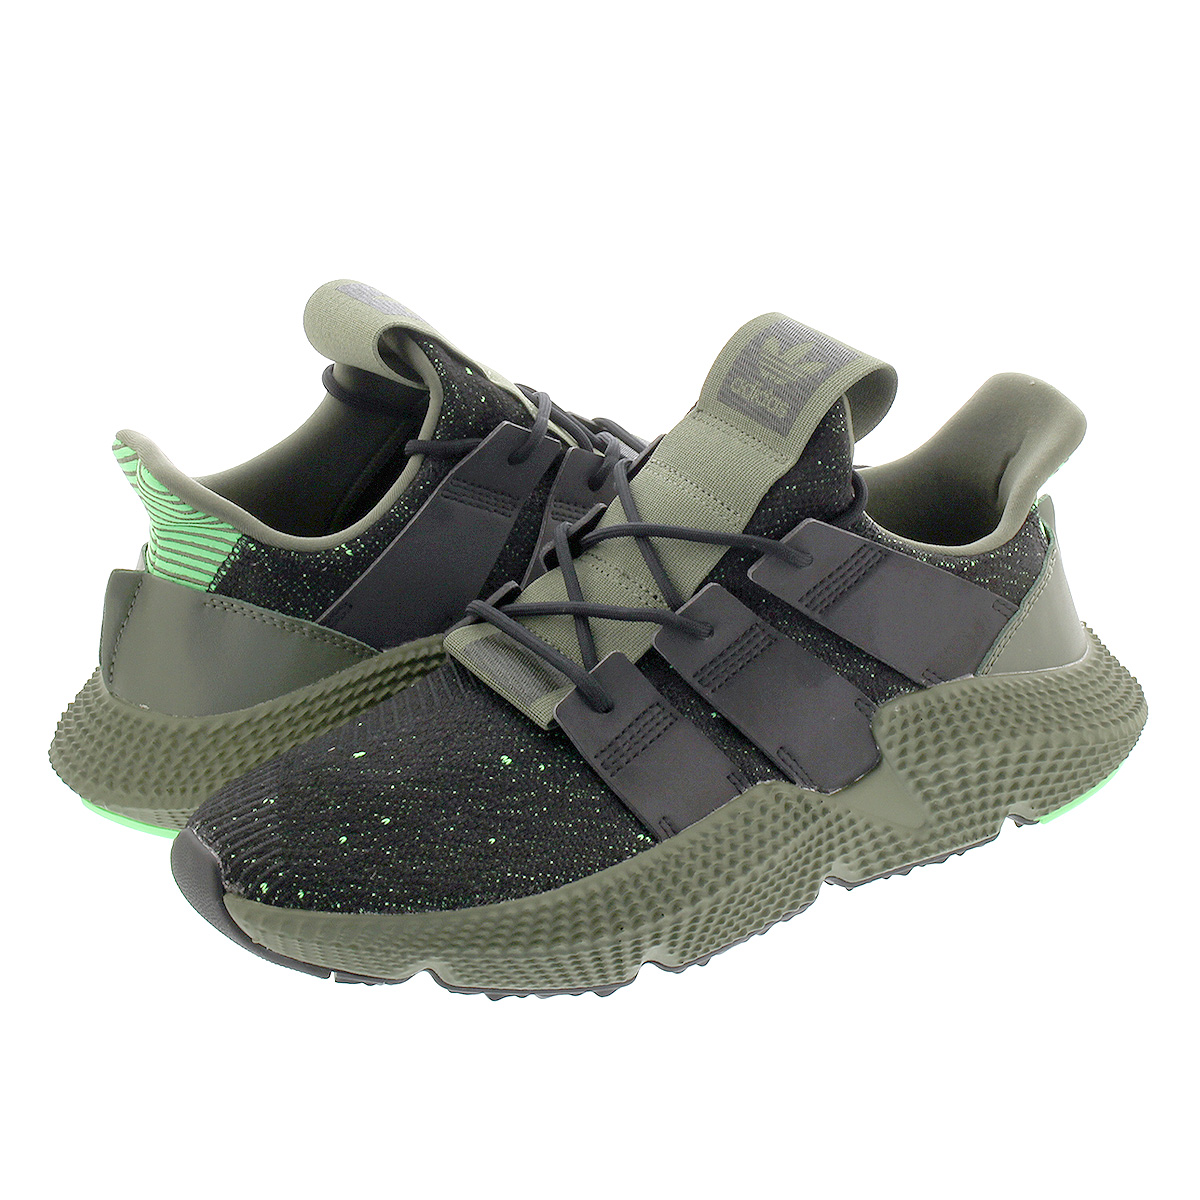 newest 95a3a 503d1 adidas PROPHERE Adidas pro Fear CORE BLACKCORE BLACKSHOCK LIME b37467